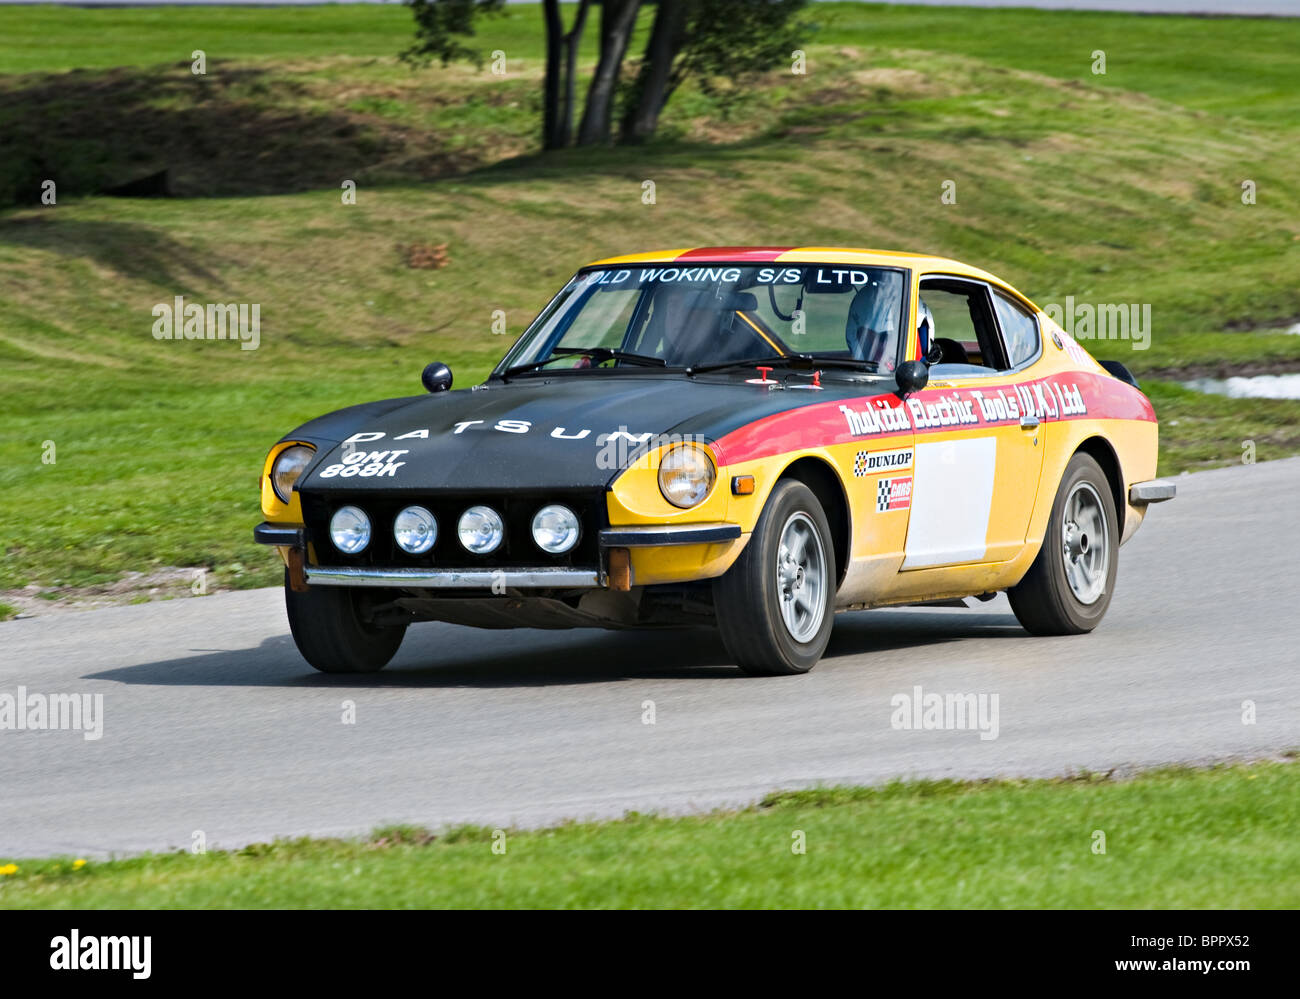 Datsun 240Z Rally Car on Rally Track at Oulton Park Motor Racing ...